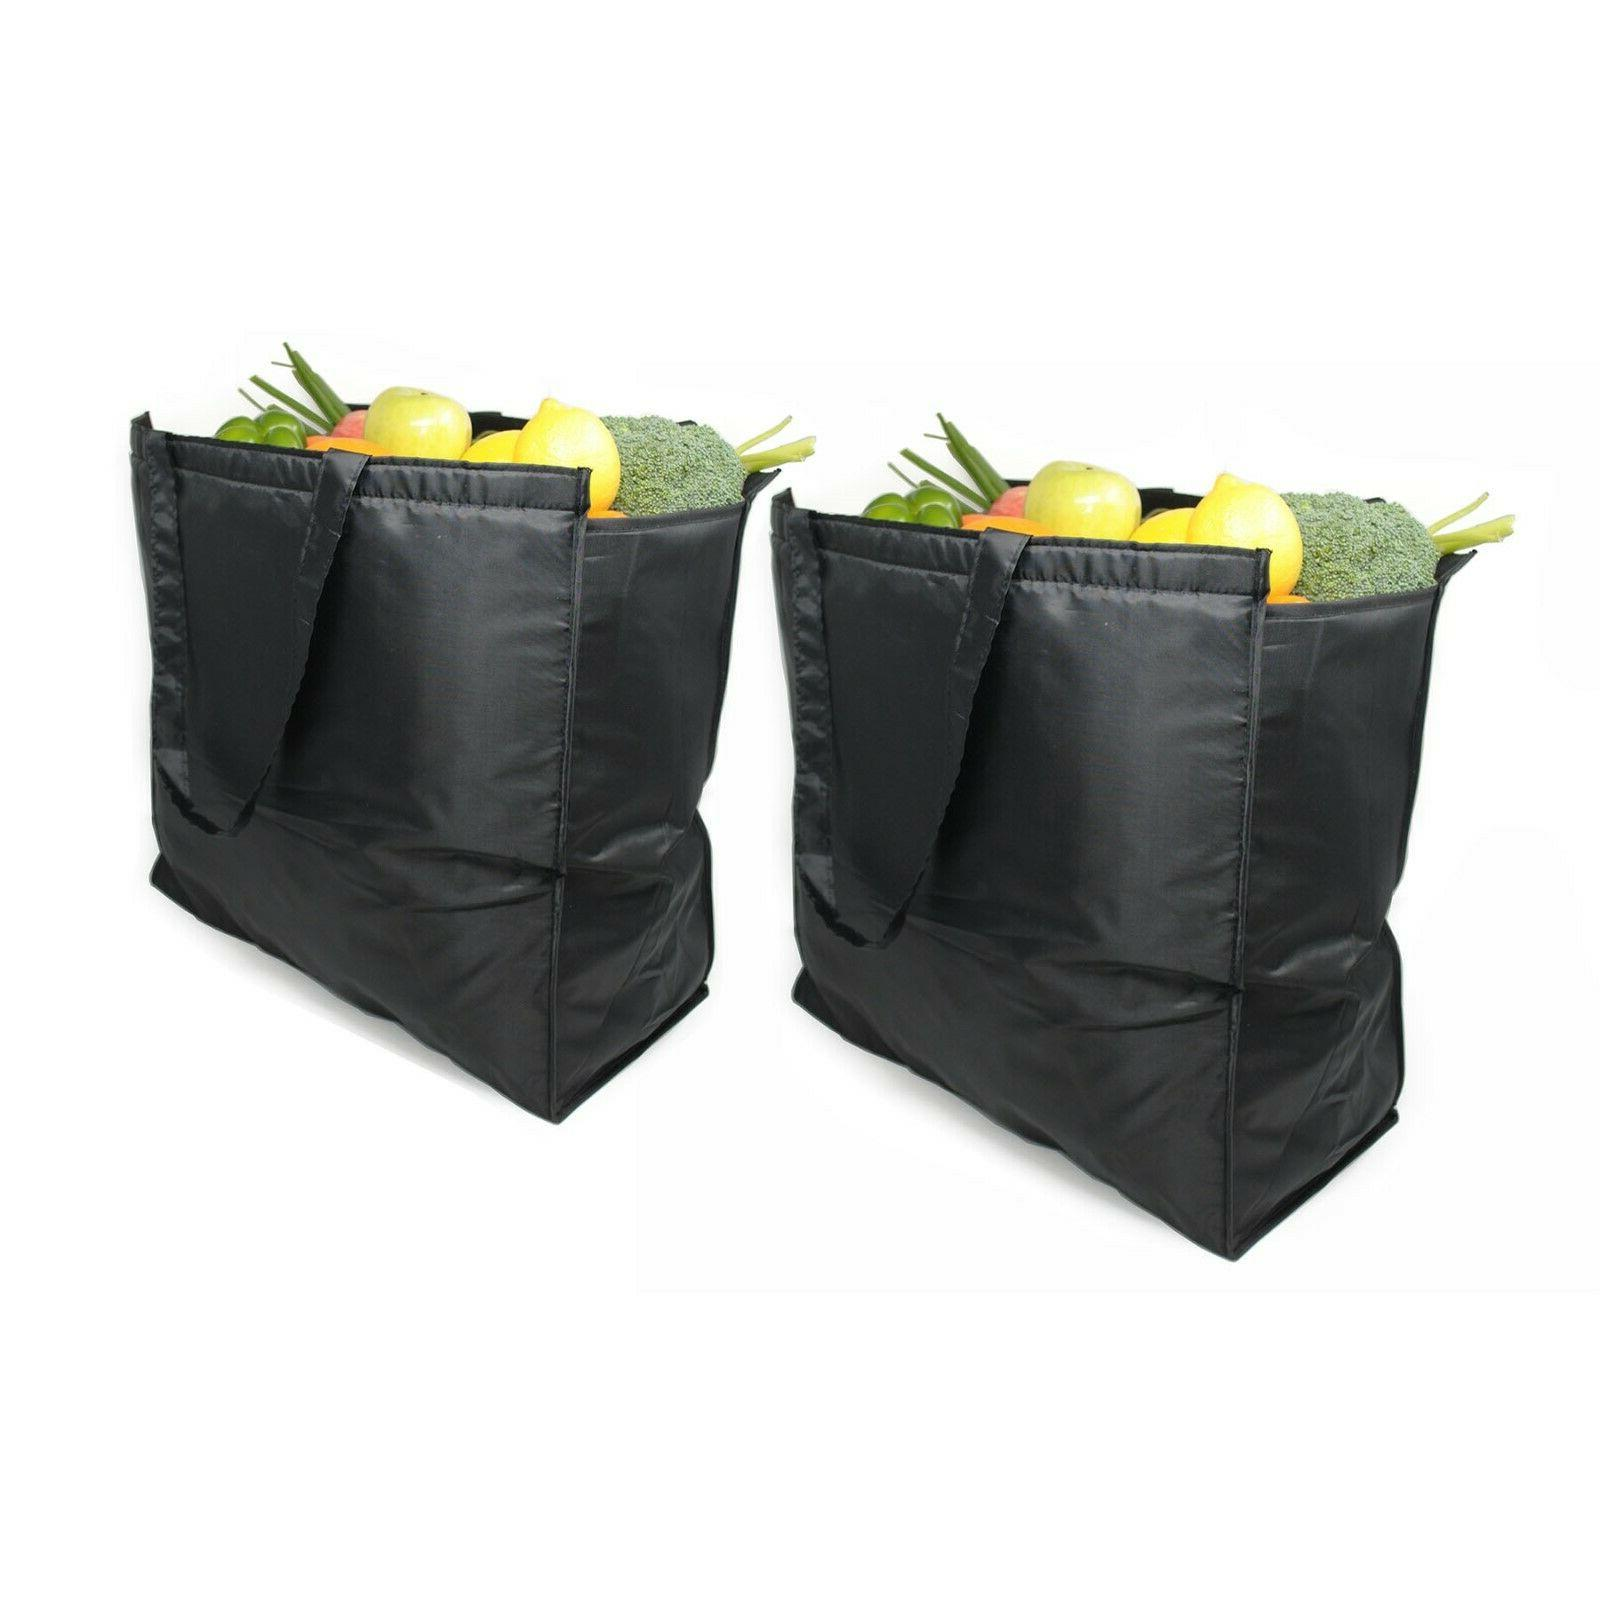 reusable extra large insulated cooler grocery bag